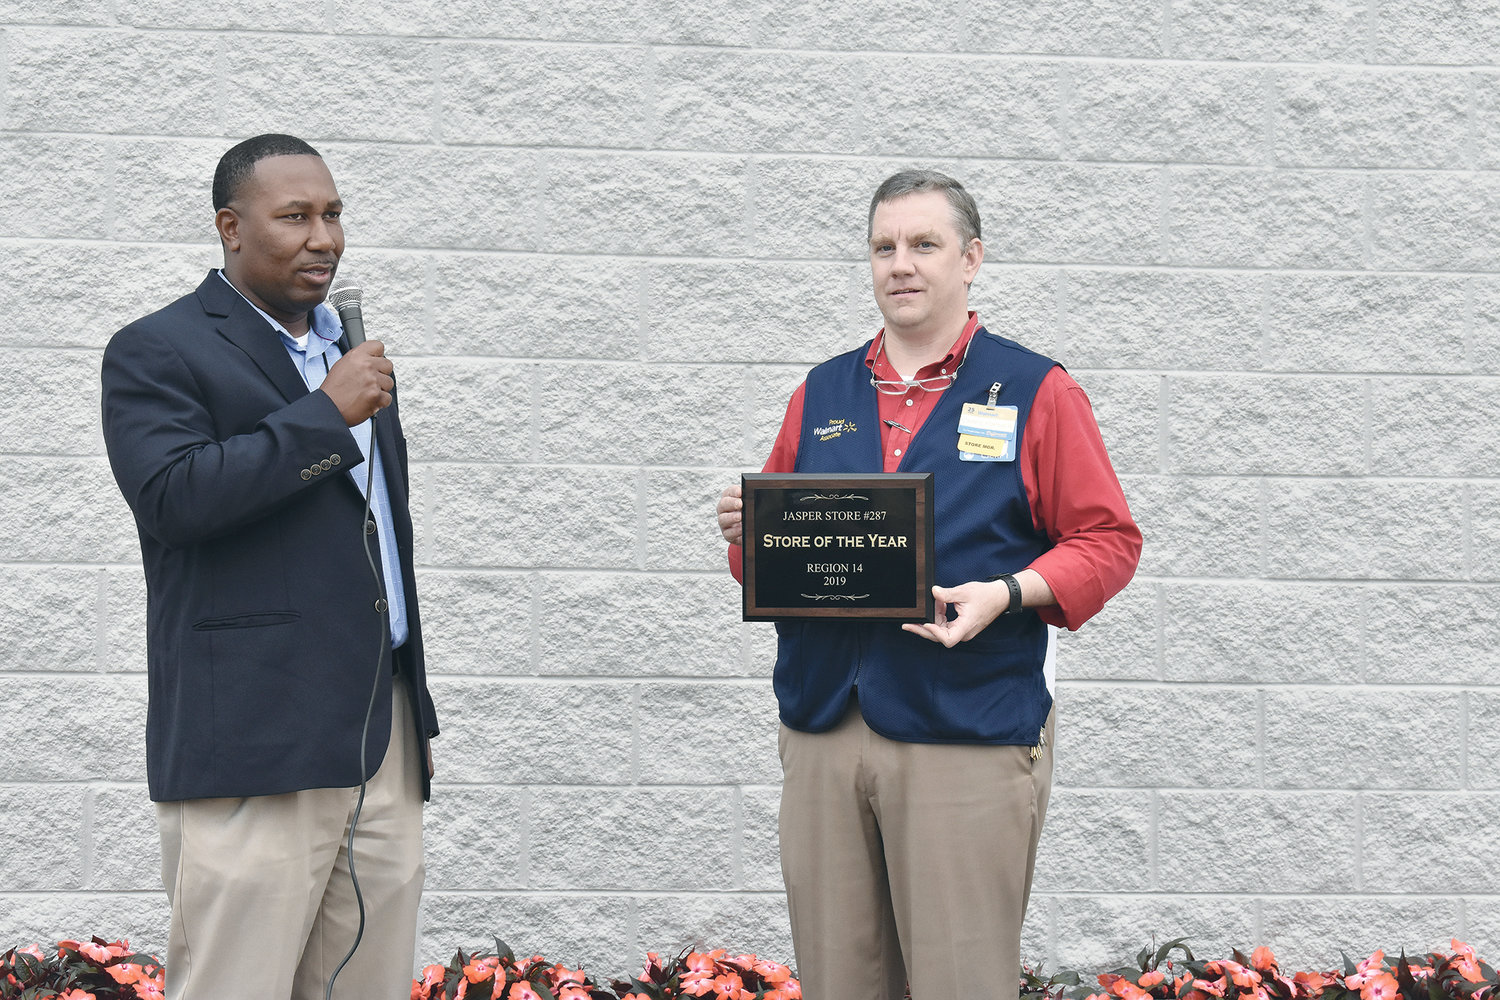 "The Walmart Supercenter in Jasper on Friday held a grand re-opening and ribbon cutting after its 12-week remodeling project, which features expanded departments and a new grocery pickup service. Long-time employee Teresa Eads, who also sang the National Anthem, was allowed to cut the ribbon. District Manager Brandon Garth presented a plaque to store manager Chris Rhodes as the store was the Region 14 Store of the Year for 2019. Rhodes thanked customers for their patience, noting, ""This remodel has been very successful."" Jasper Mayor David O'Mary reminded the crowd that the local Walmart was the first to open in Alabama in 1979. ""You have made a tremendous impact on Jasper, Alabama,"" he said."